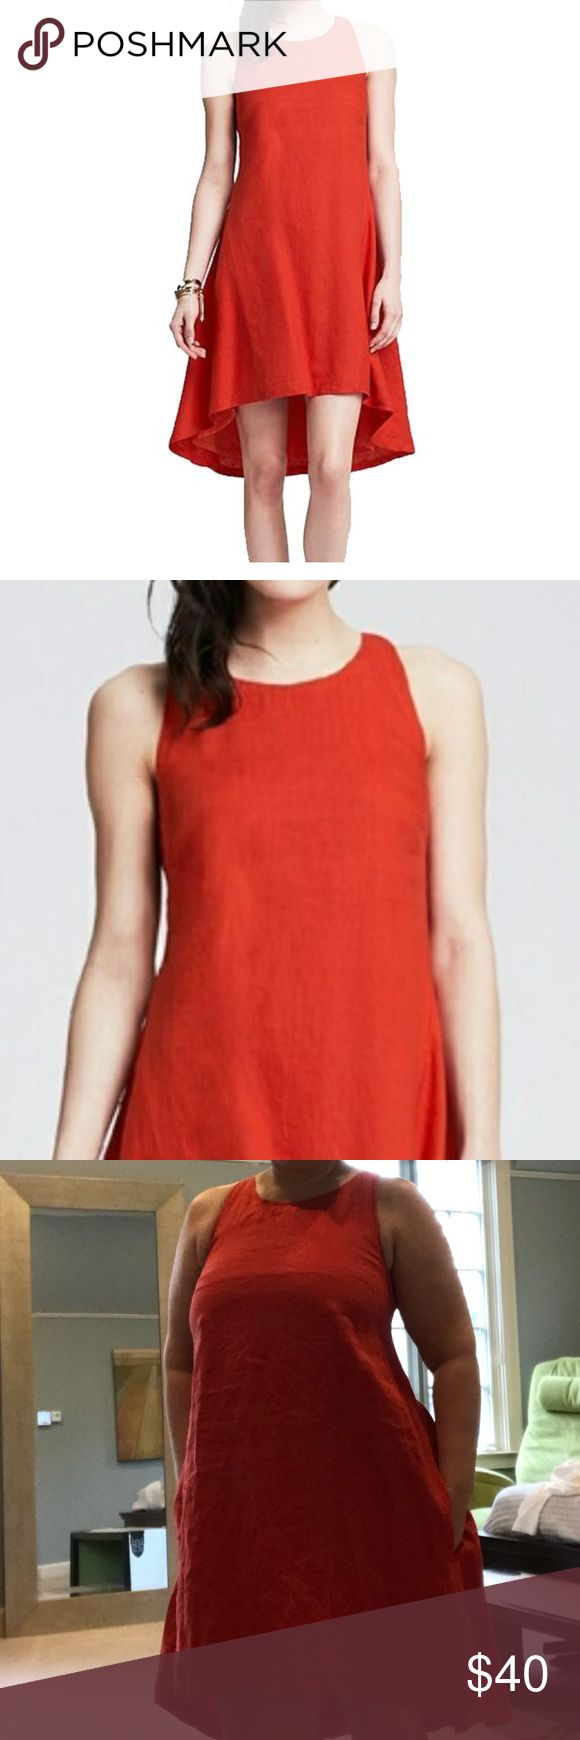 NWT Banana Republic linen high-low dress 12 NWT Banana Republic linen high-low dress, size 12. This red-hot dress keeps it fresh with a high-low hemline. Linen Trapeze Dress, $110 at Banana Republic Banana Republic Dresses High Low